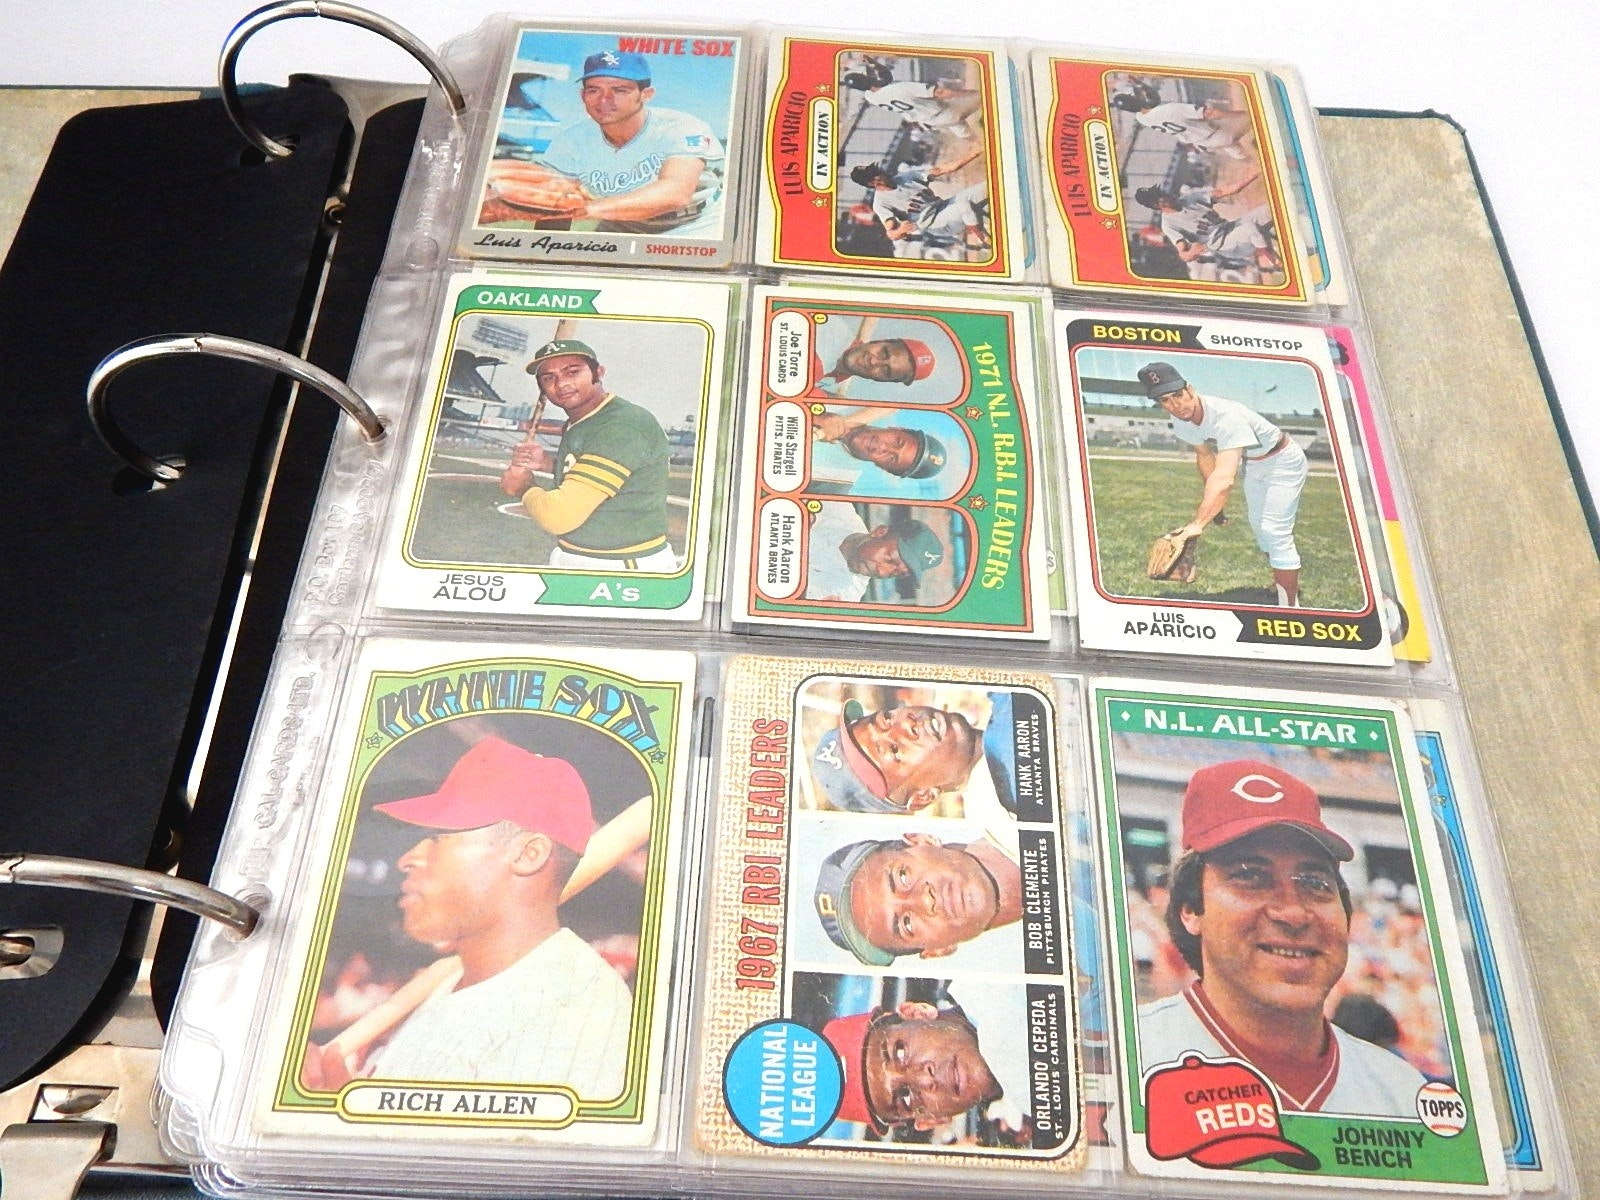 Album of Vintage Baseball Cards from 1950s through 1980s